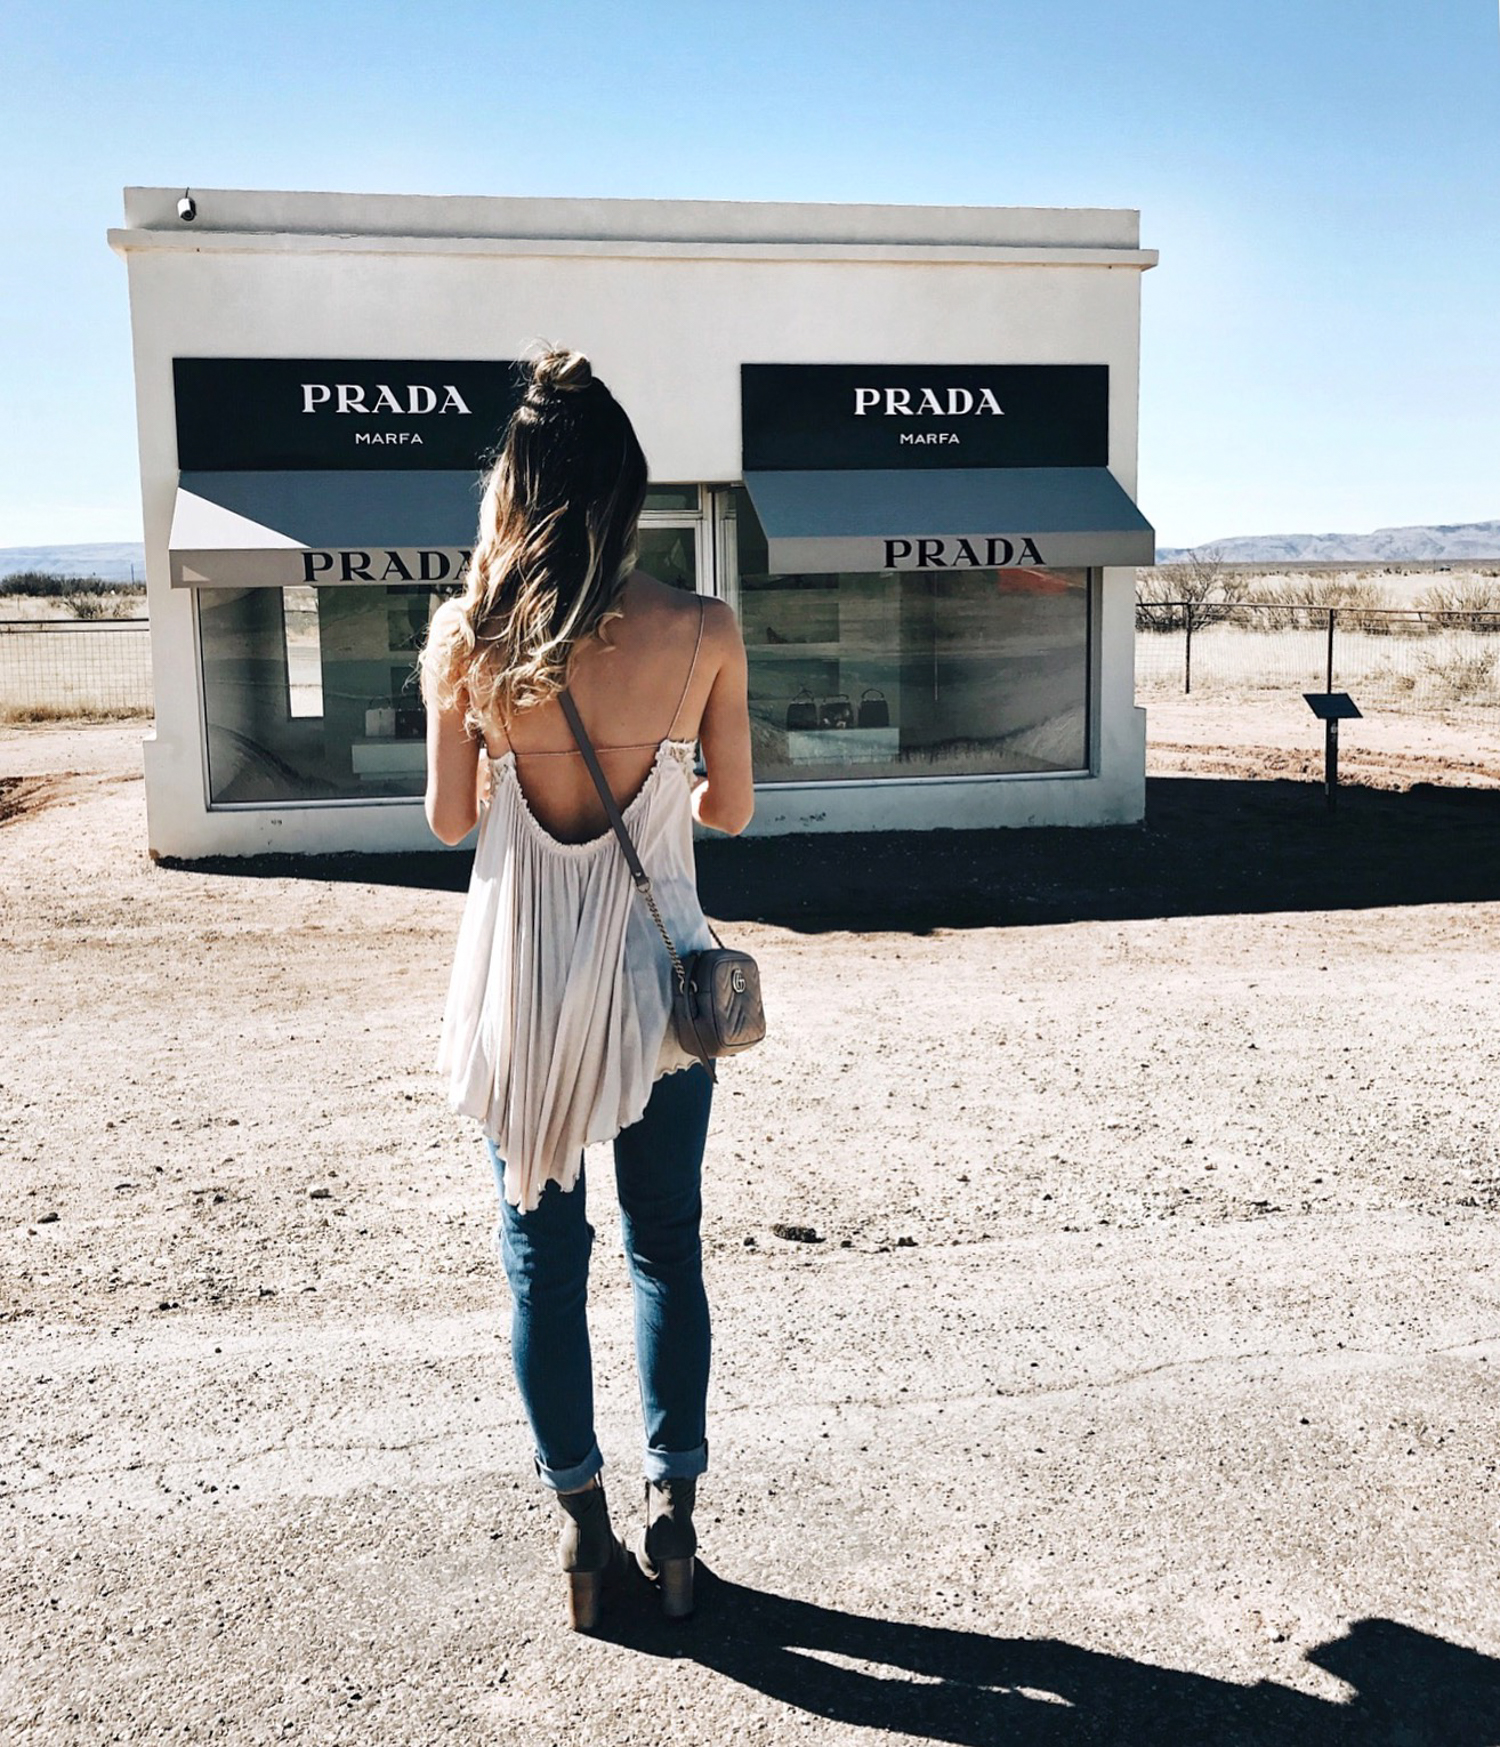 livvyland-blog-olivia-watson-marfa-valentine-texas-big-bend-road-trip-weekend-getaway-prada-art-27